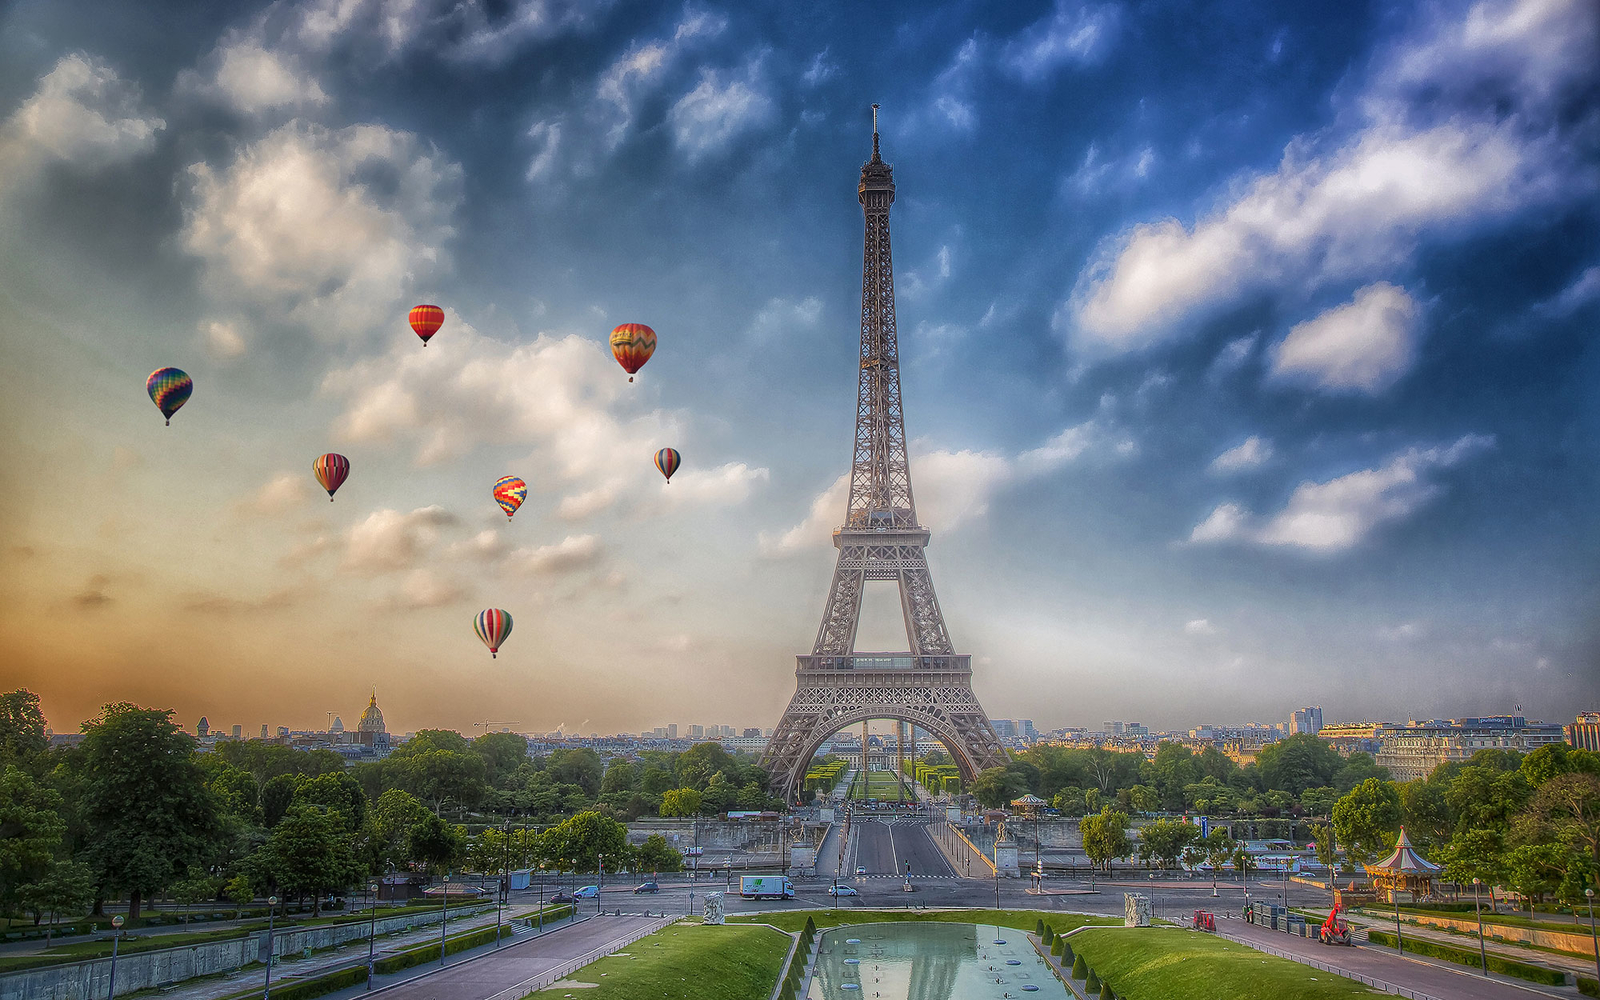 Hot-air balloon flying by the Eiffel tower